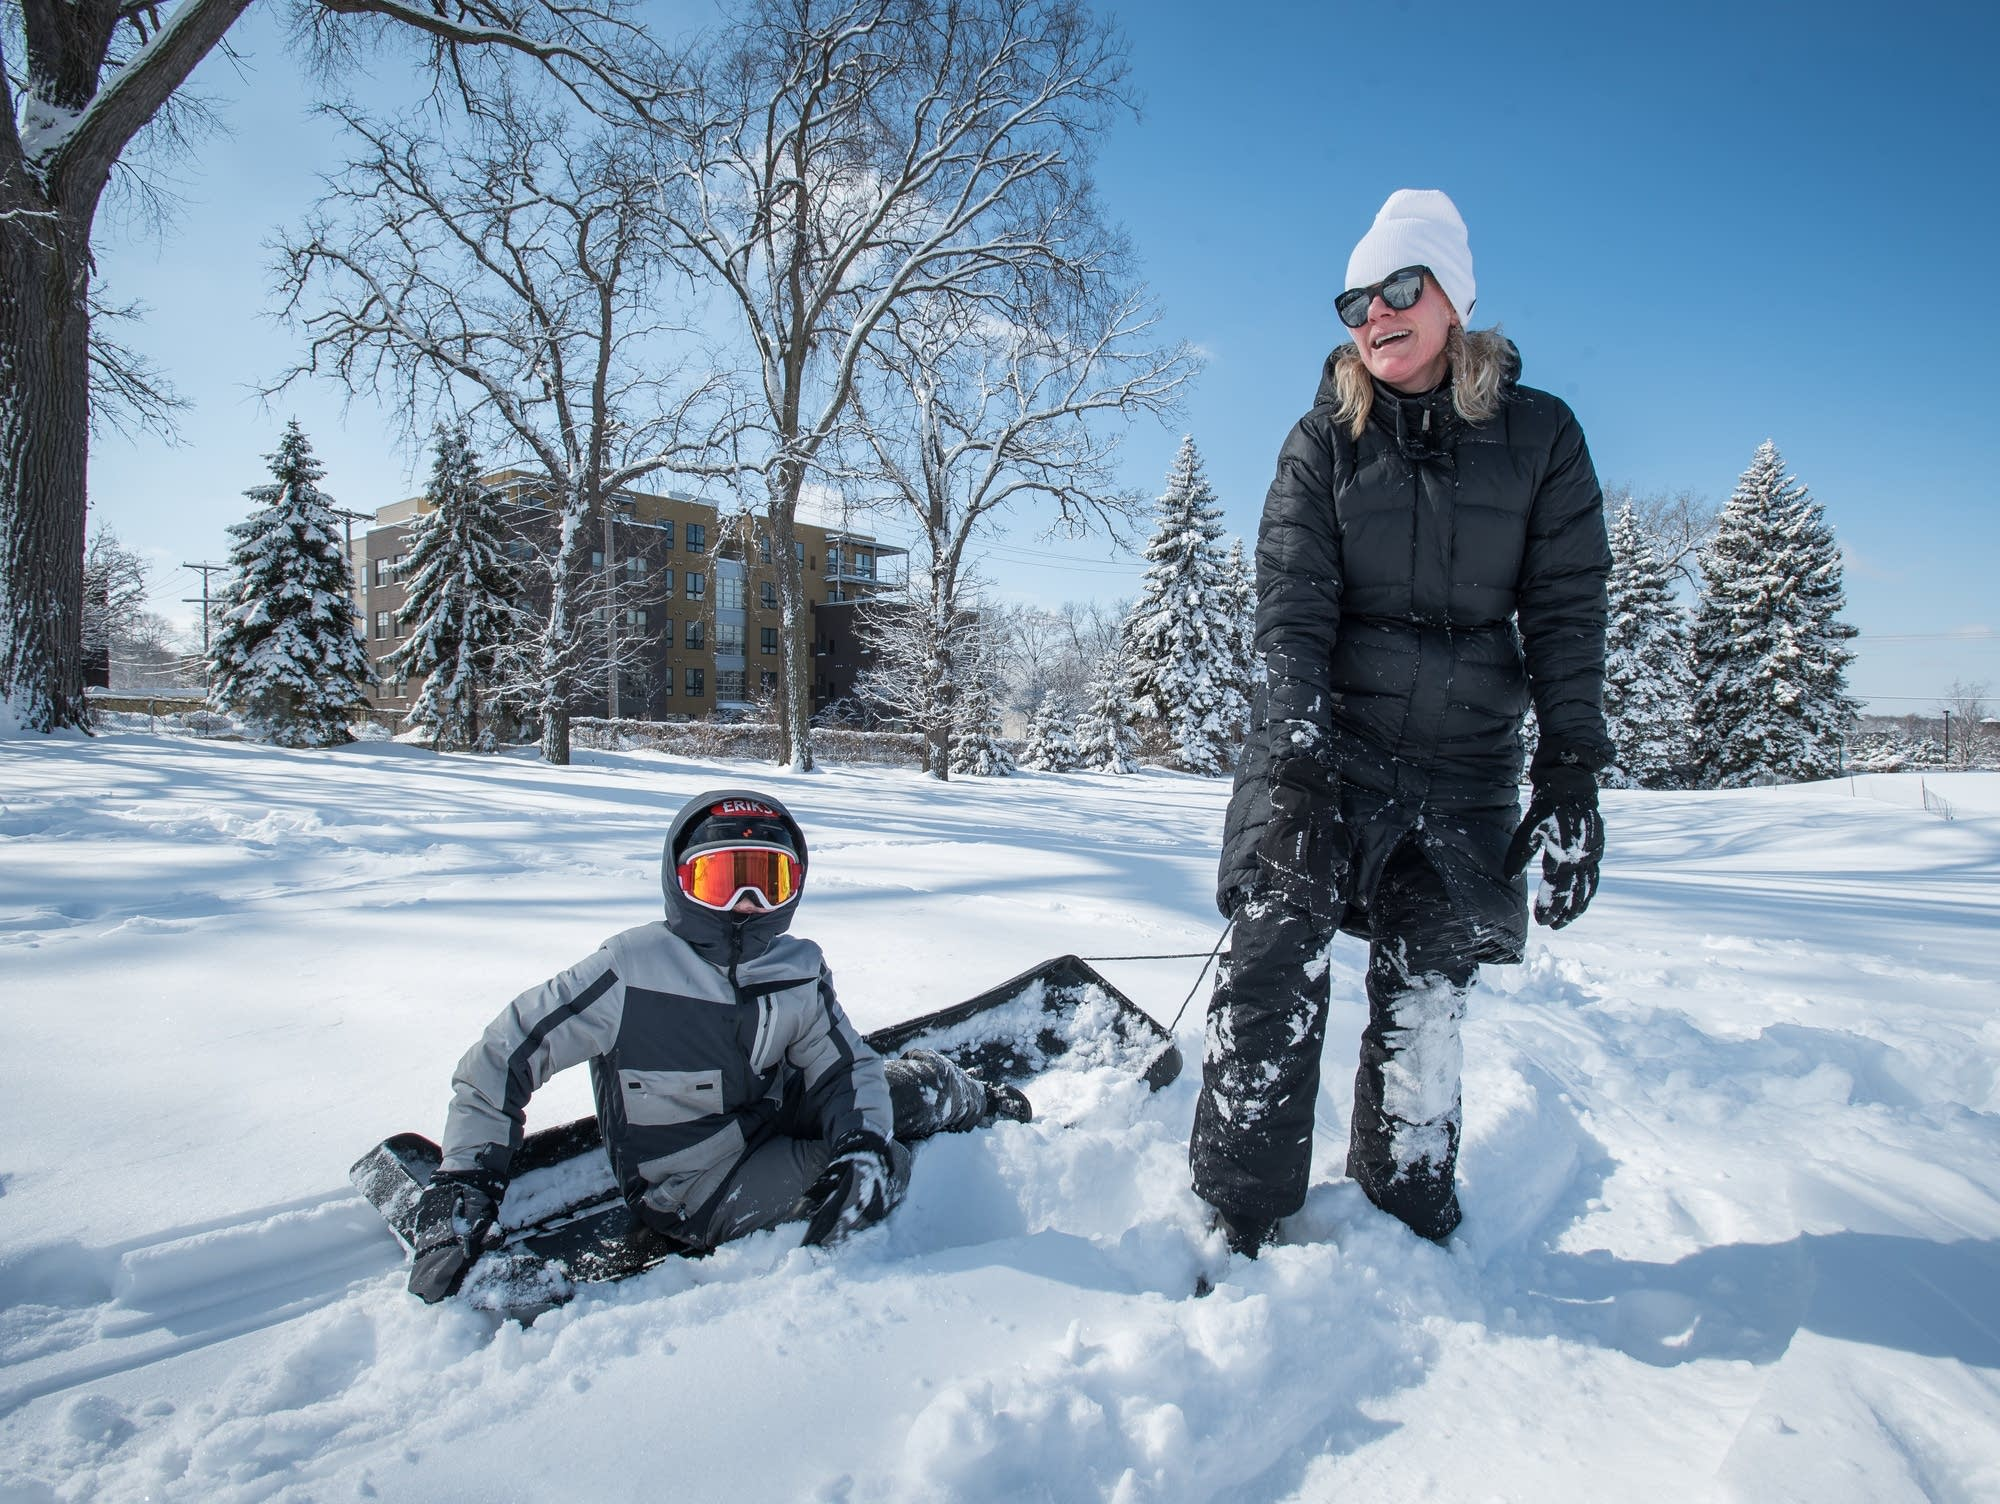 Sledding in St. Paul after a winter storm